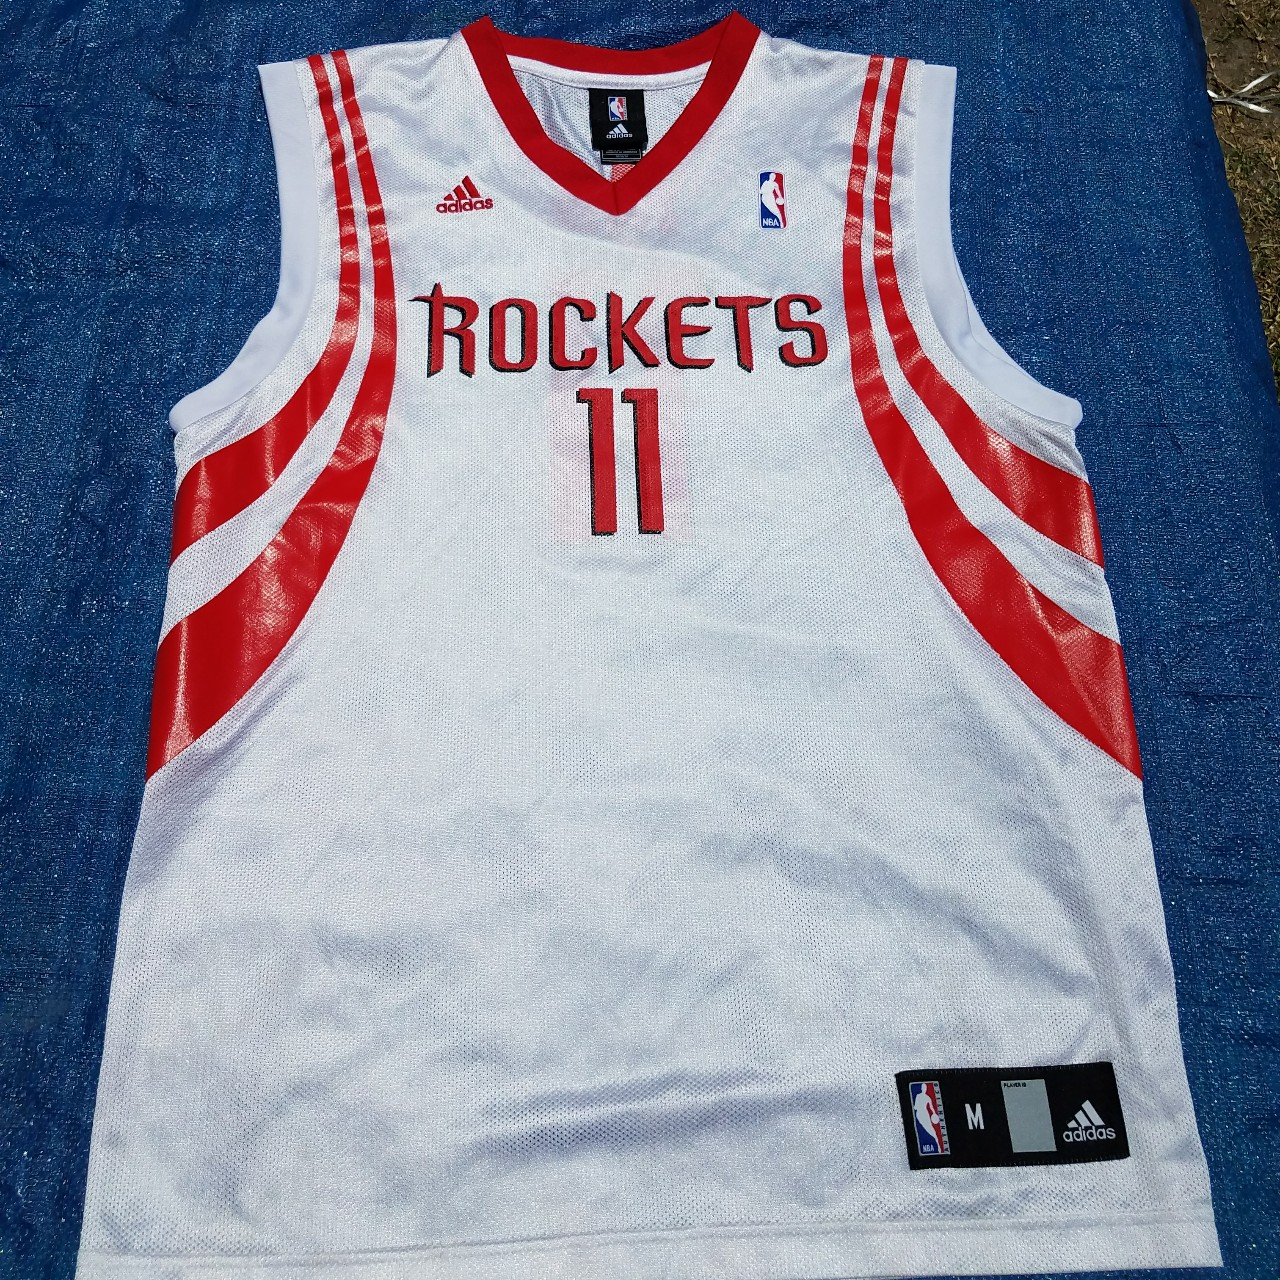 reputable site 3884f 548bc Adidas houston rockets home Jersey Yao ming 11... - Depop